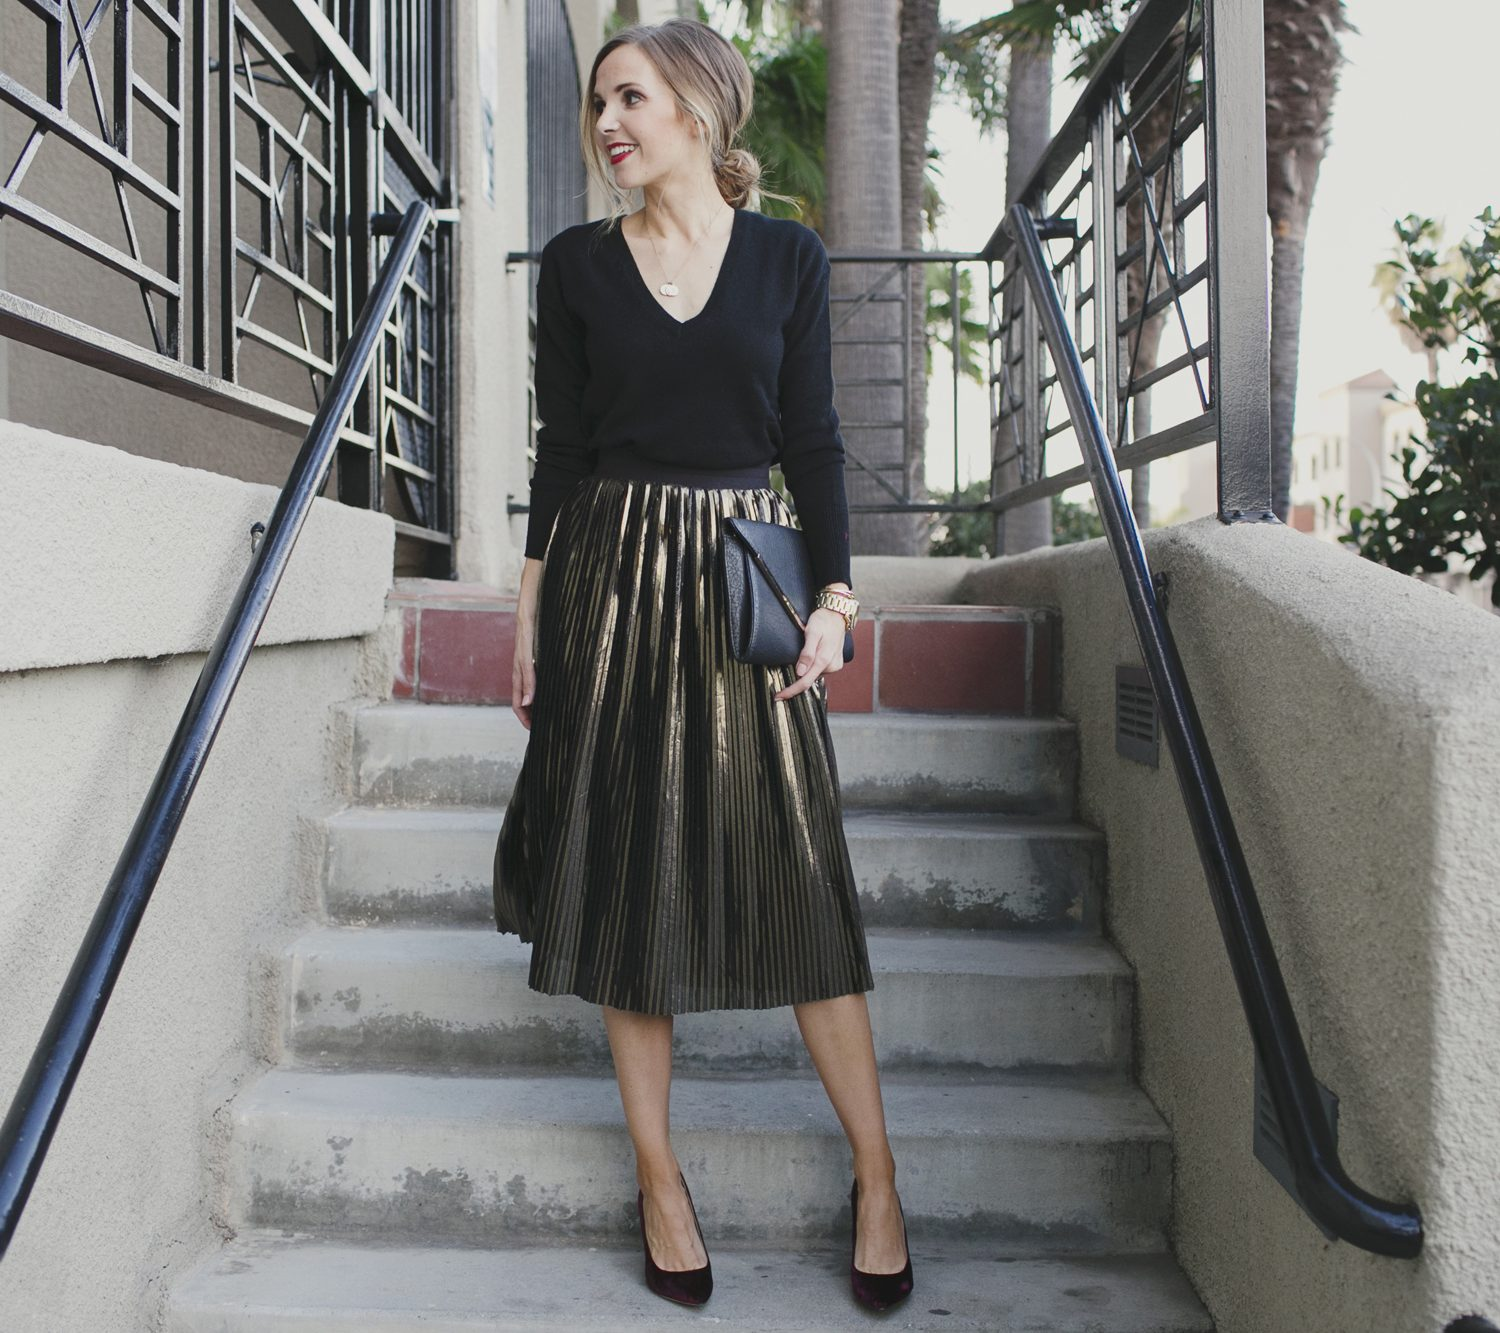 Merrick's Art Gold Pleated Skirt